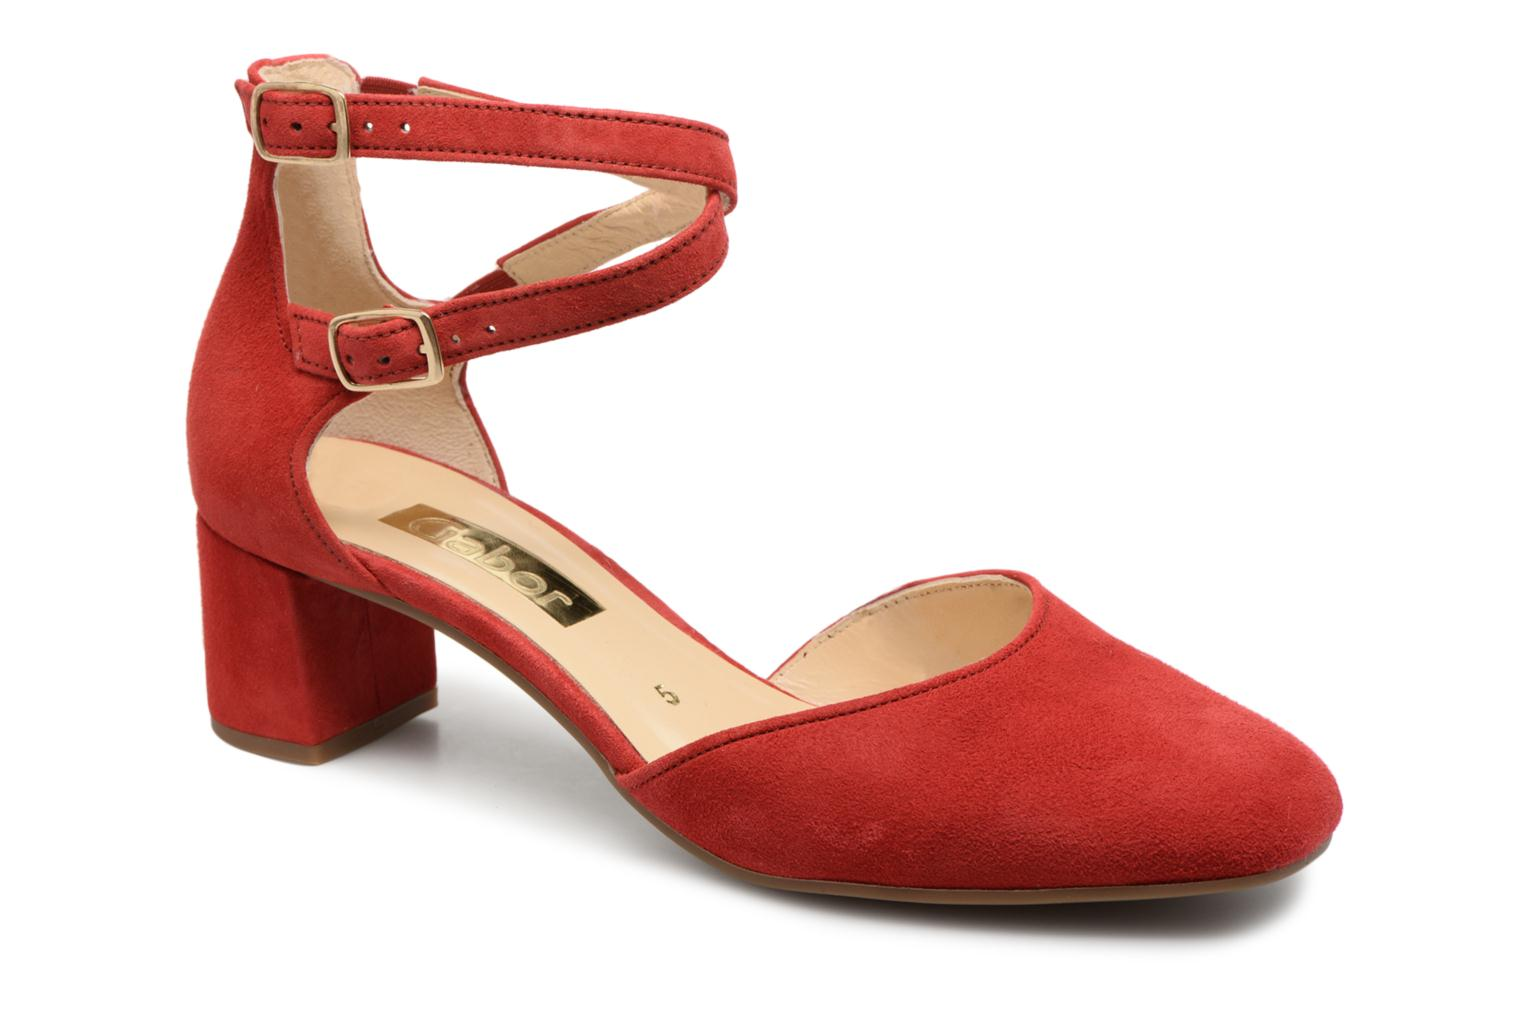 Marques Chaussure femme Gabor femme Jodie Rosso